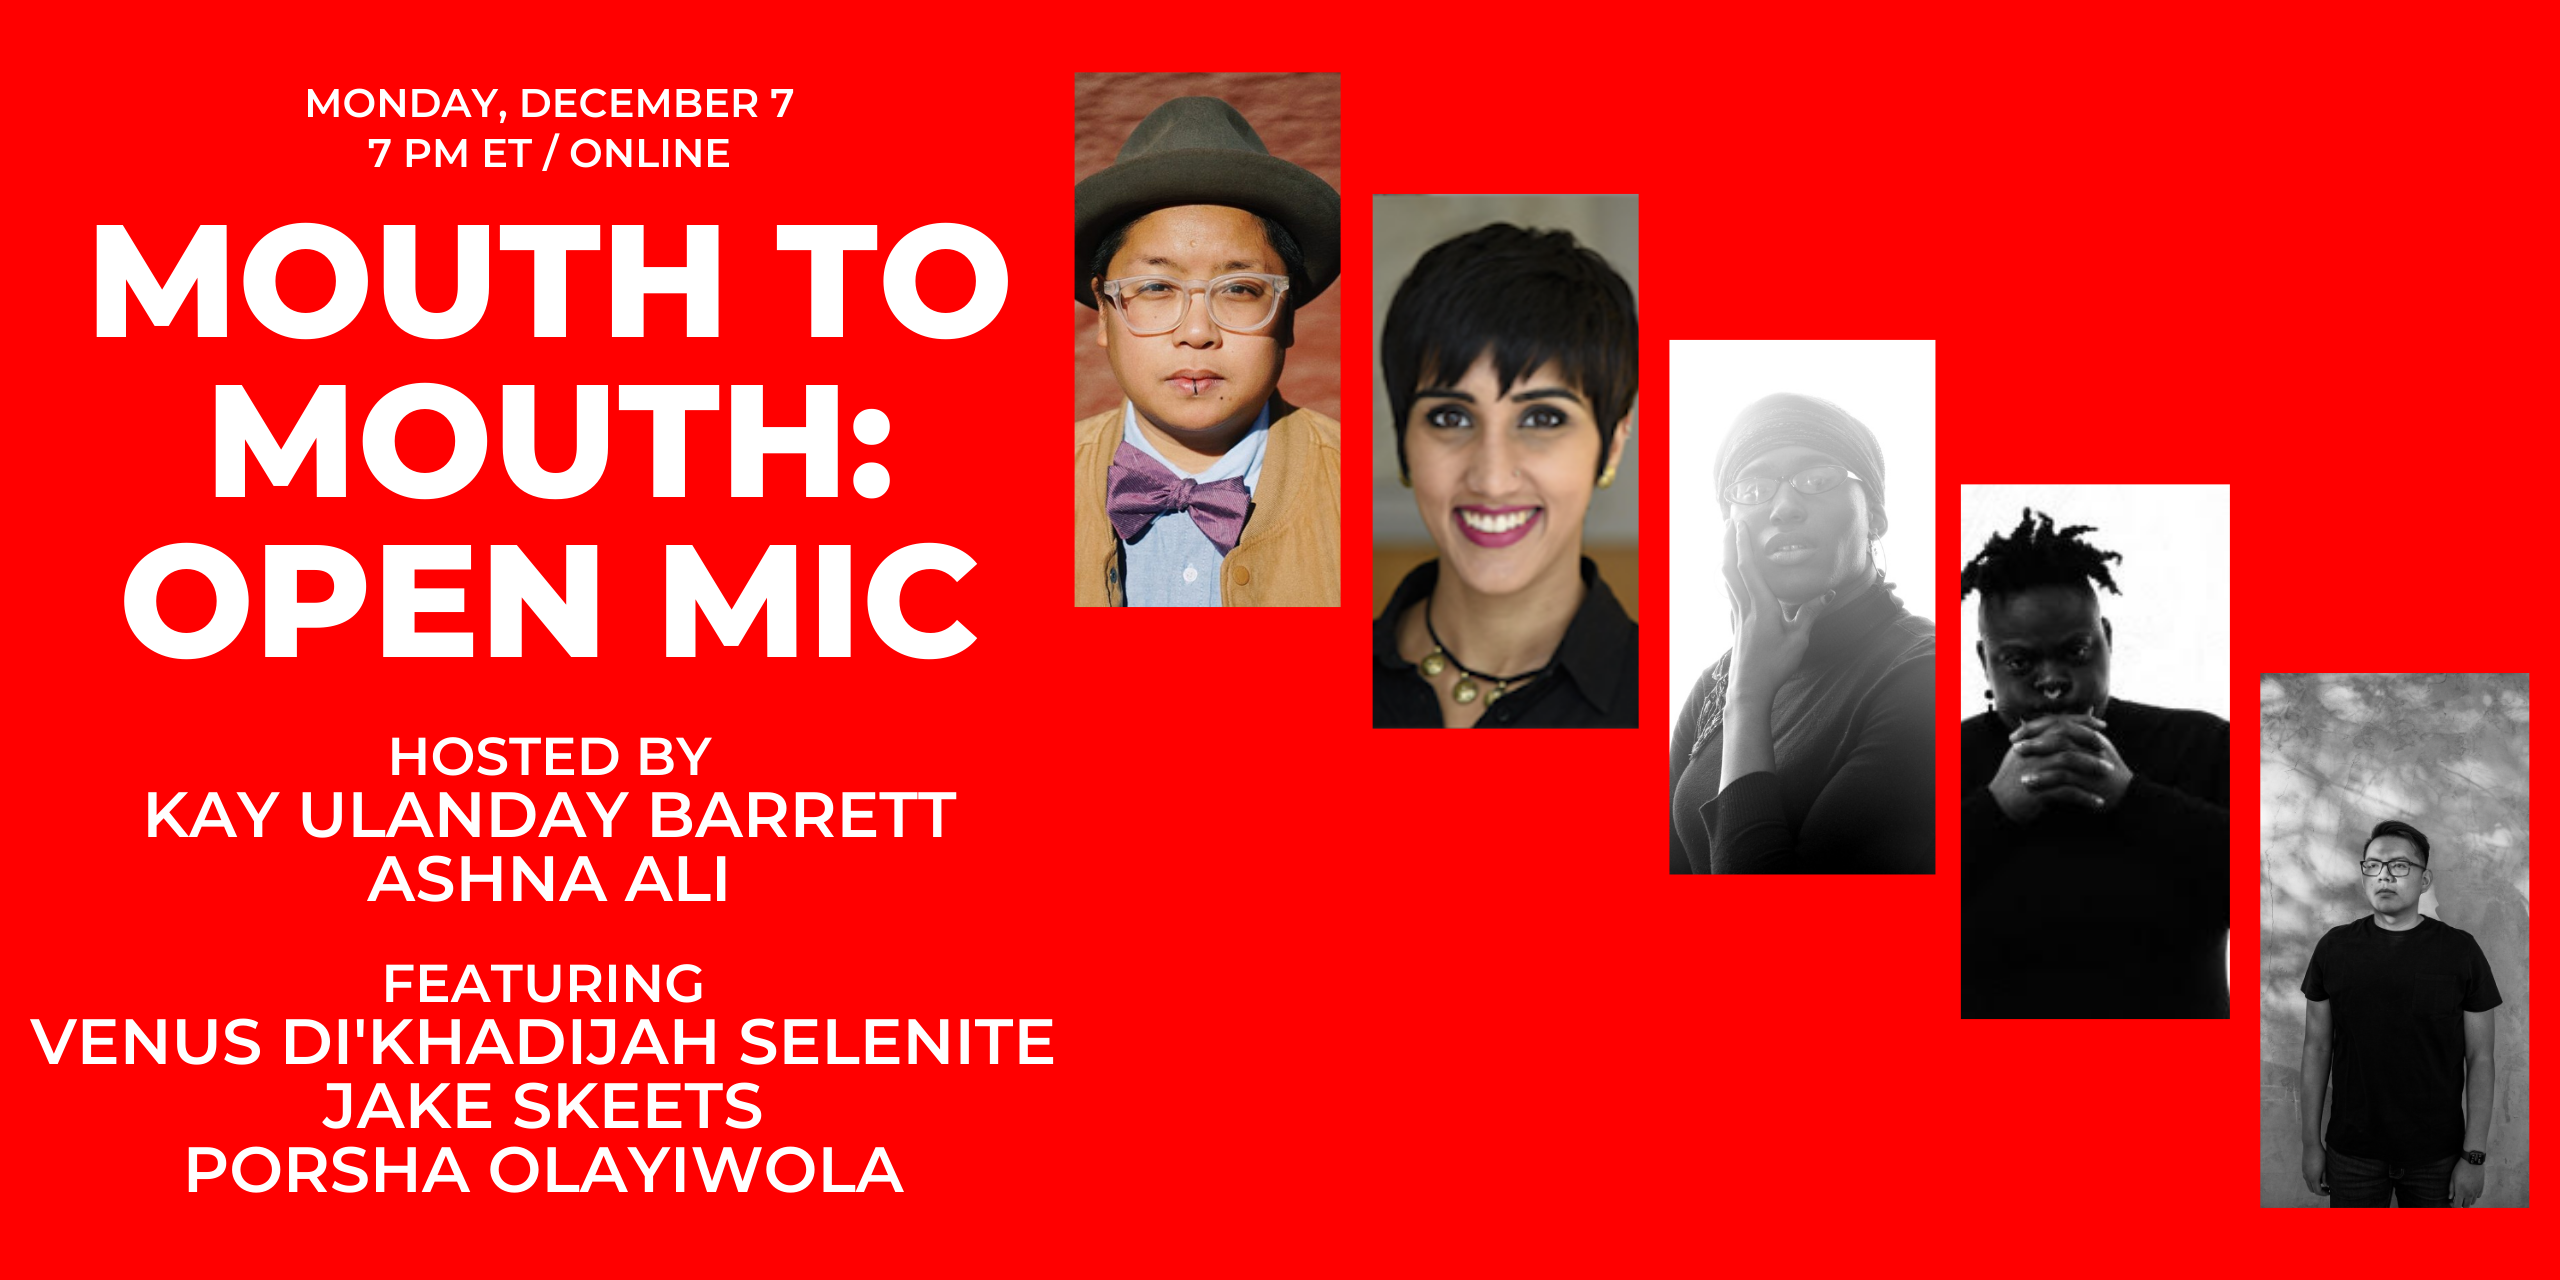 AAWW & Kay Ulanday Barrett Present Mouth to Mouth: Open Mic and Showcase